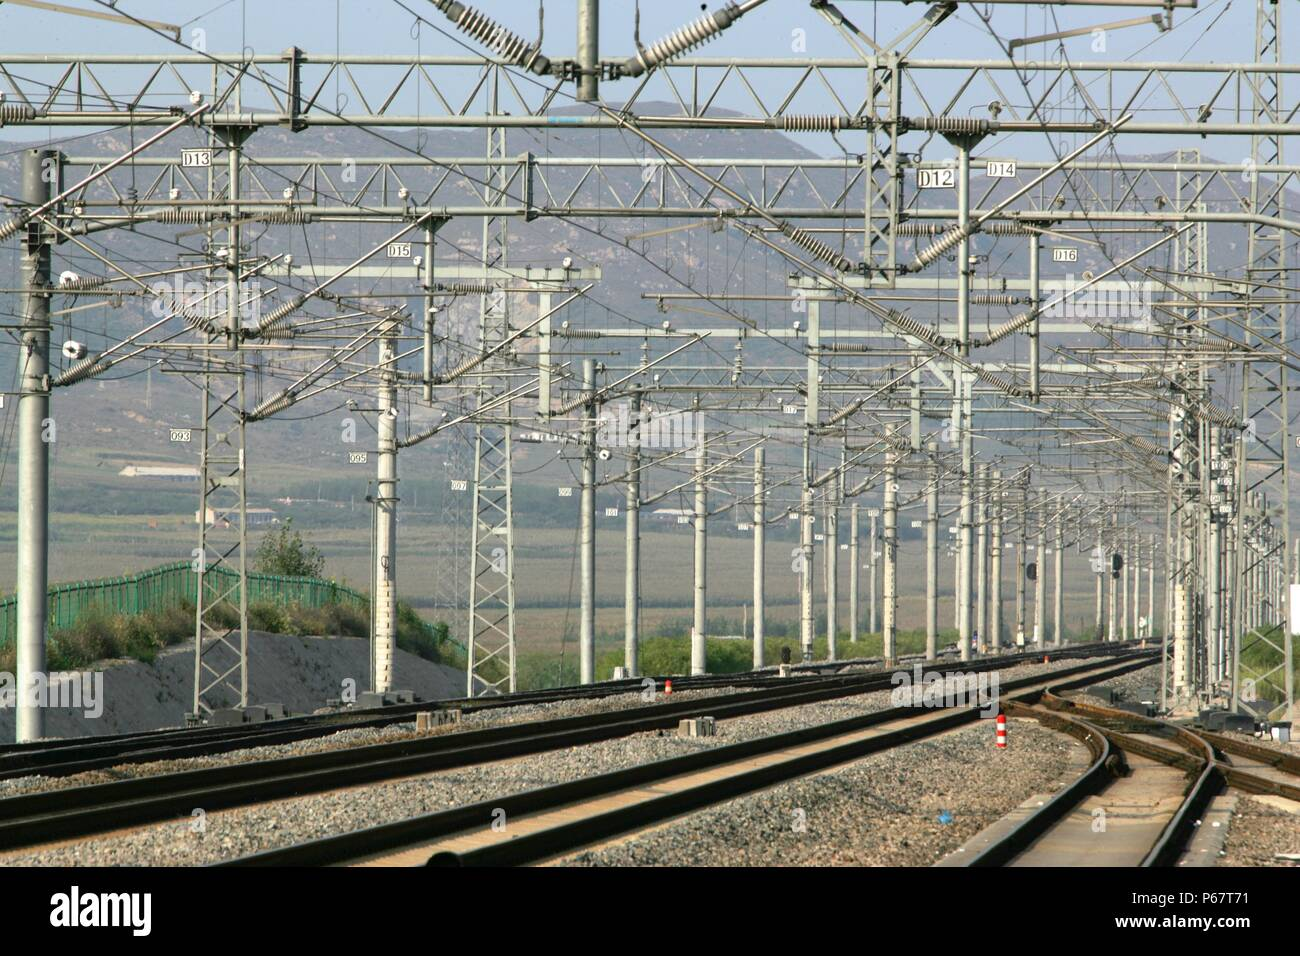 Qinhuangdoa Ð Jinzhou line China Railways. September 2005. - Stock Image